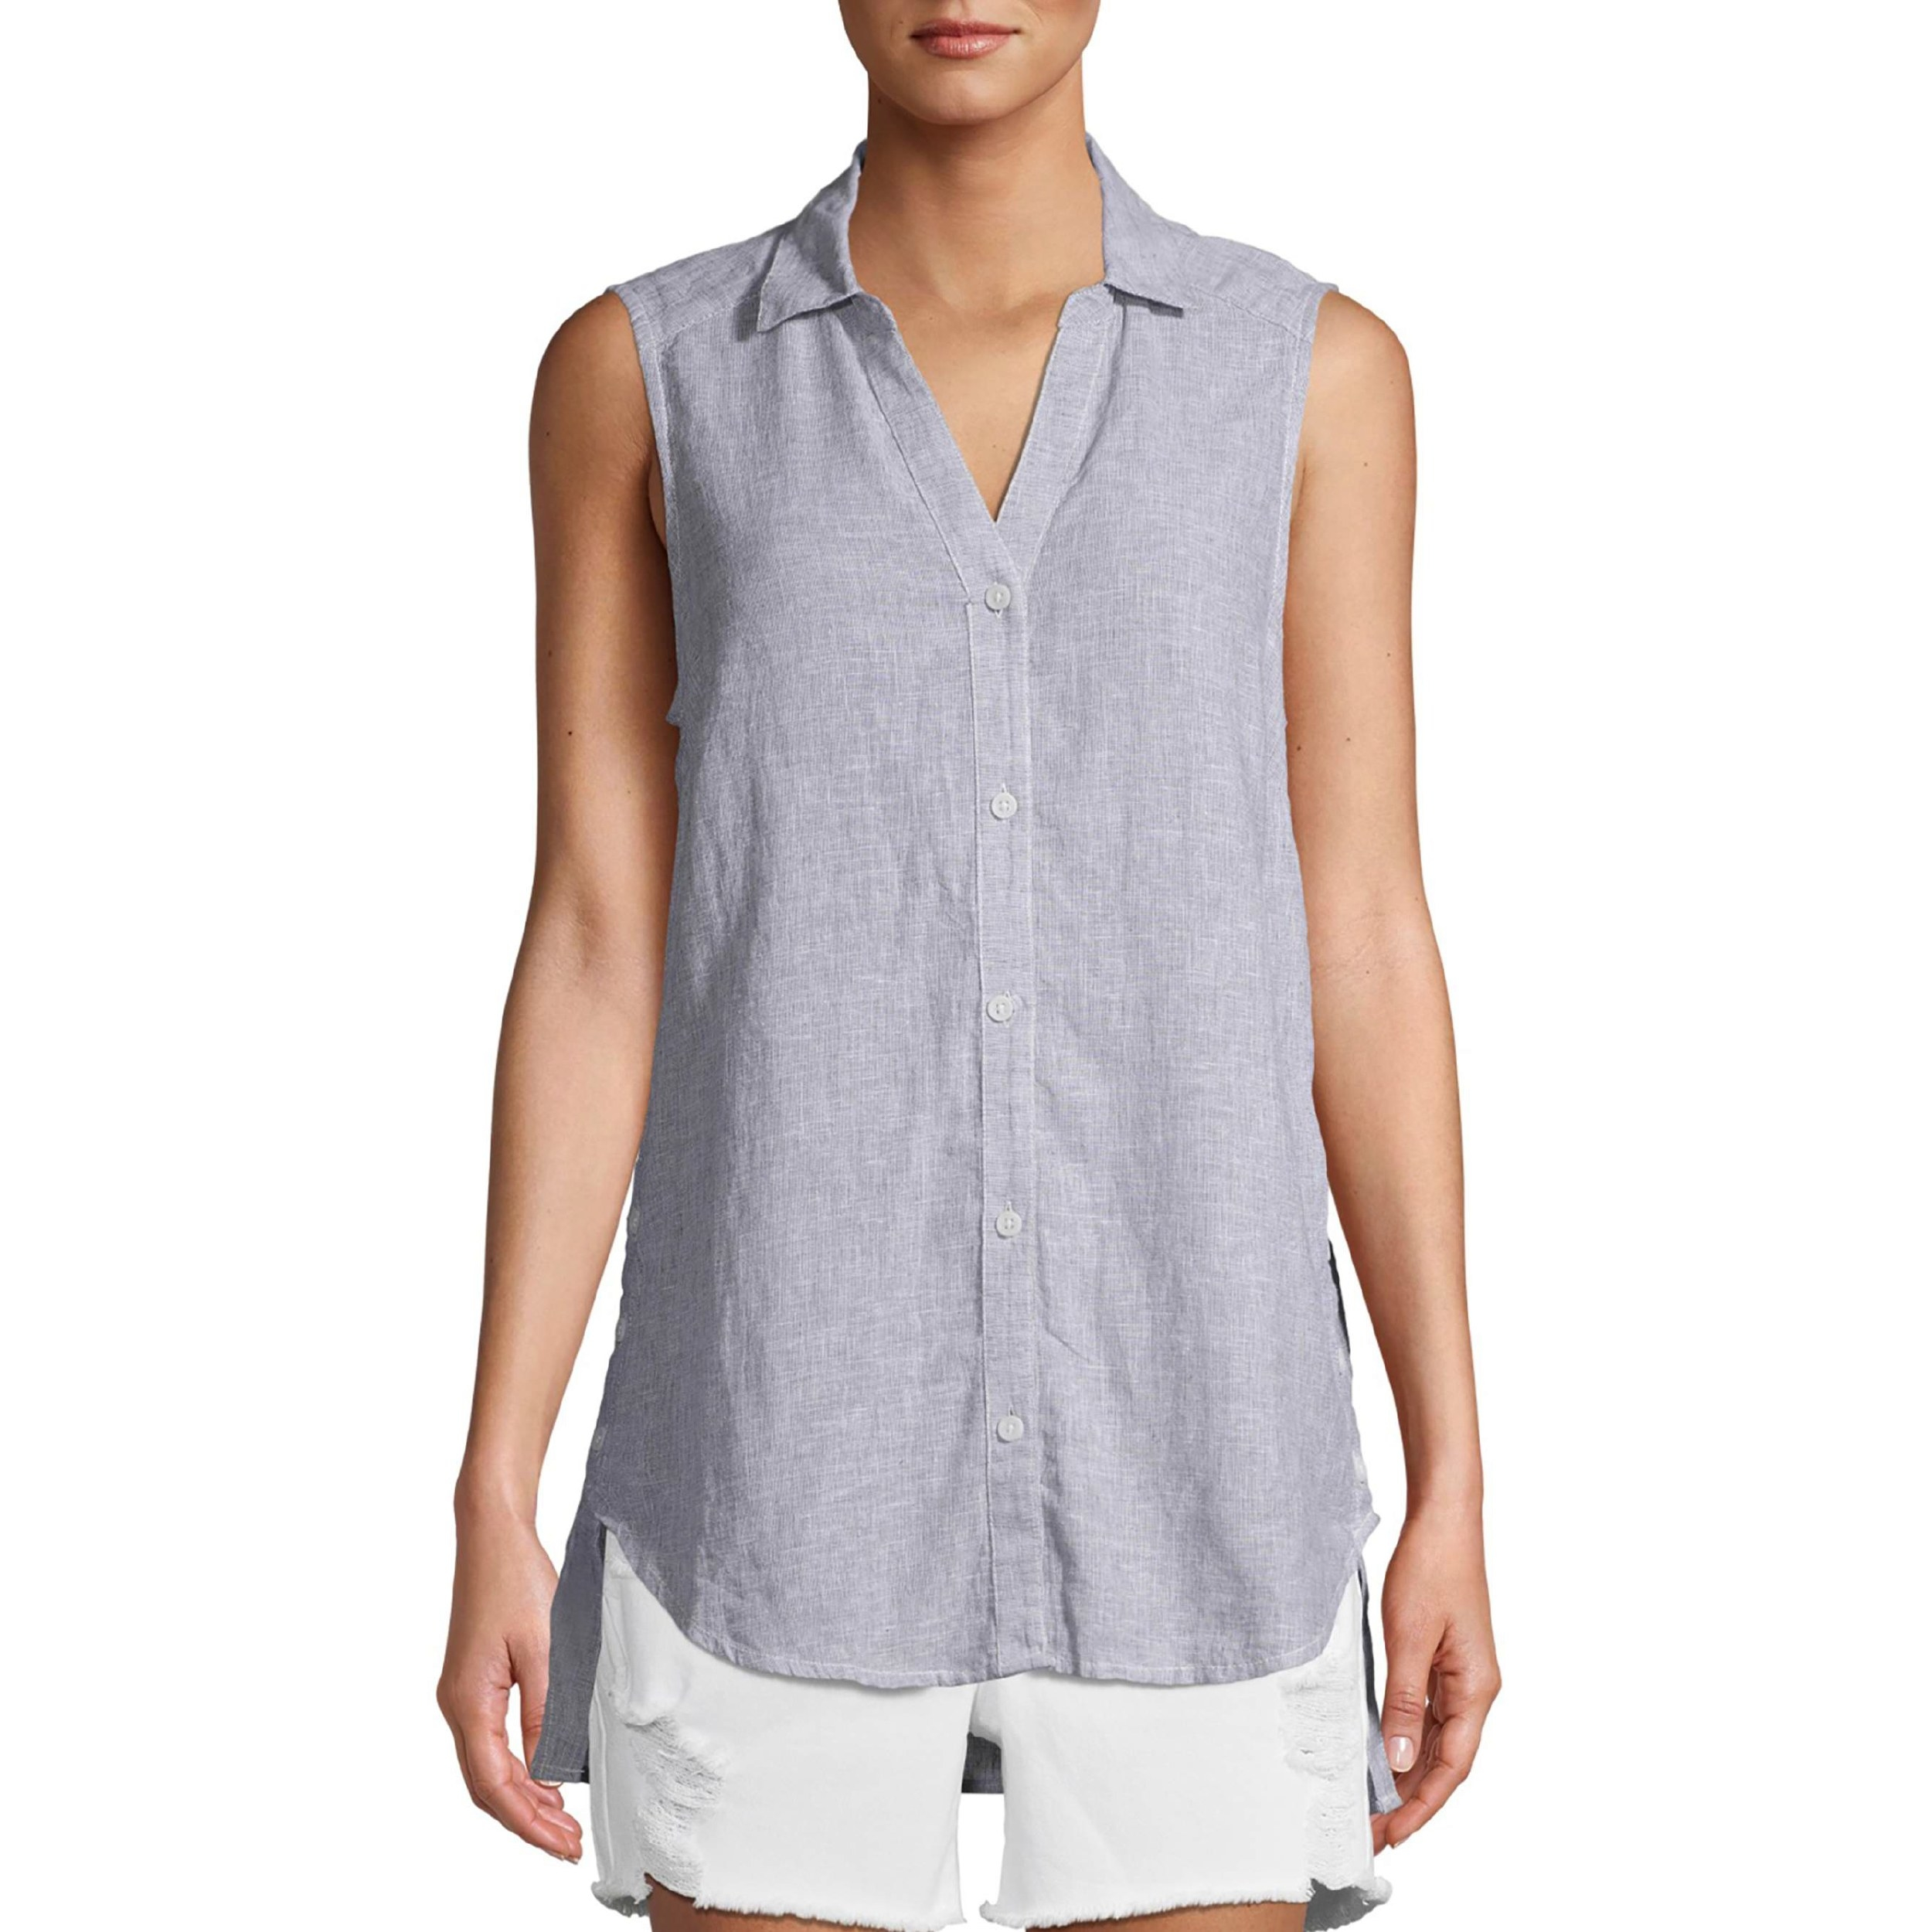 The grey linen button-down tank